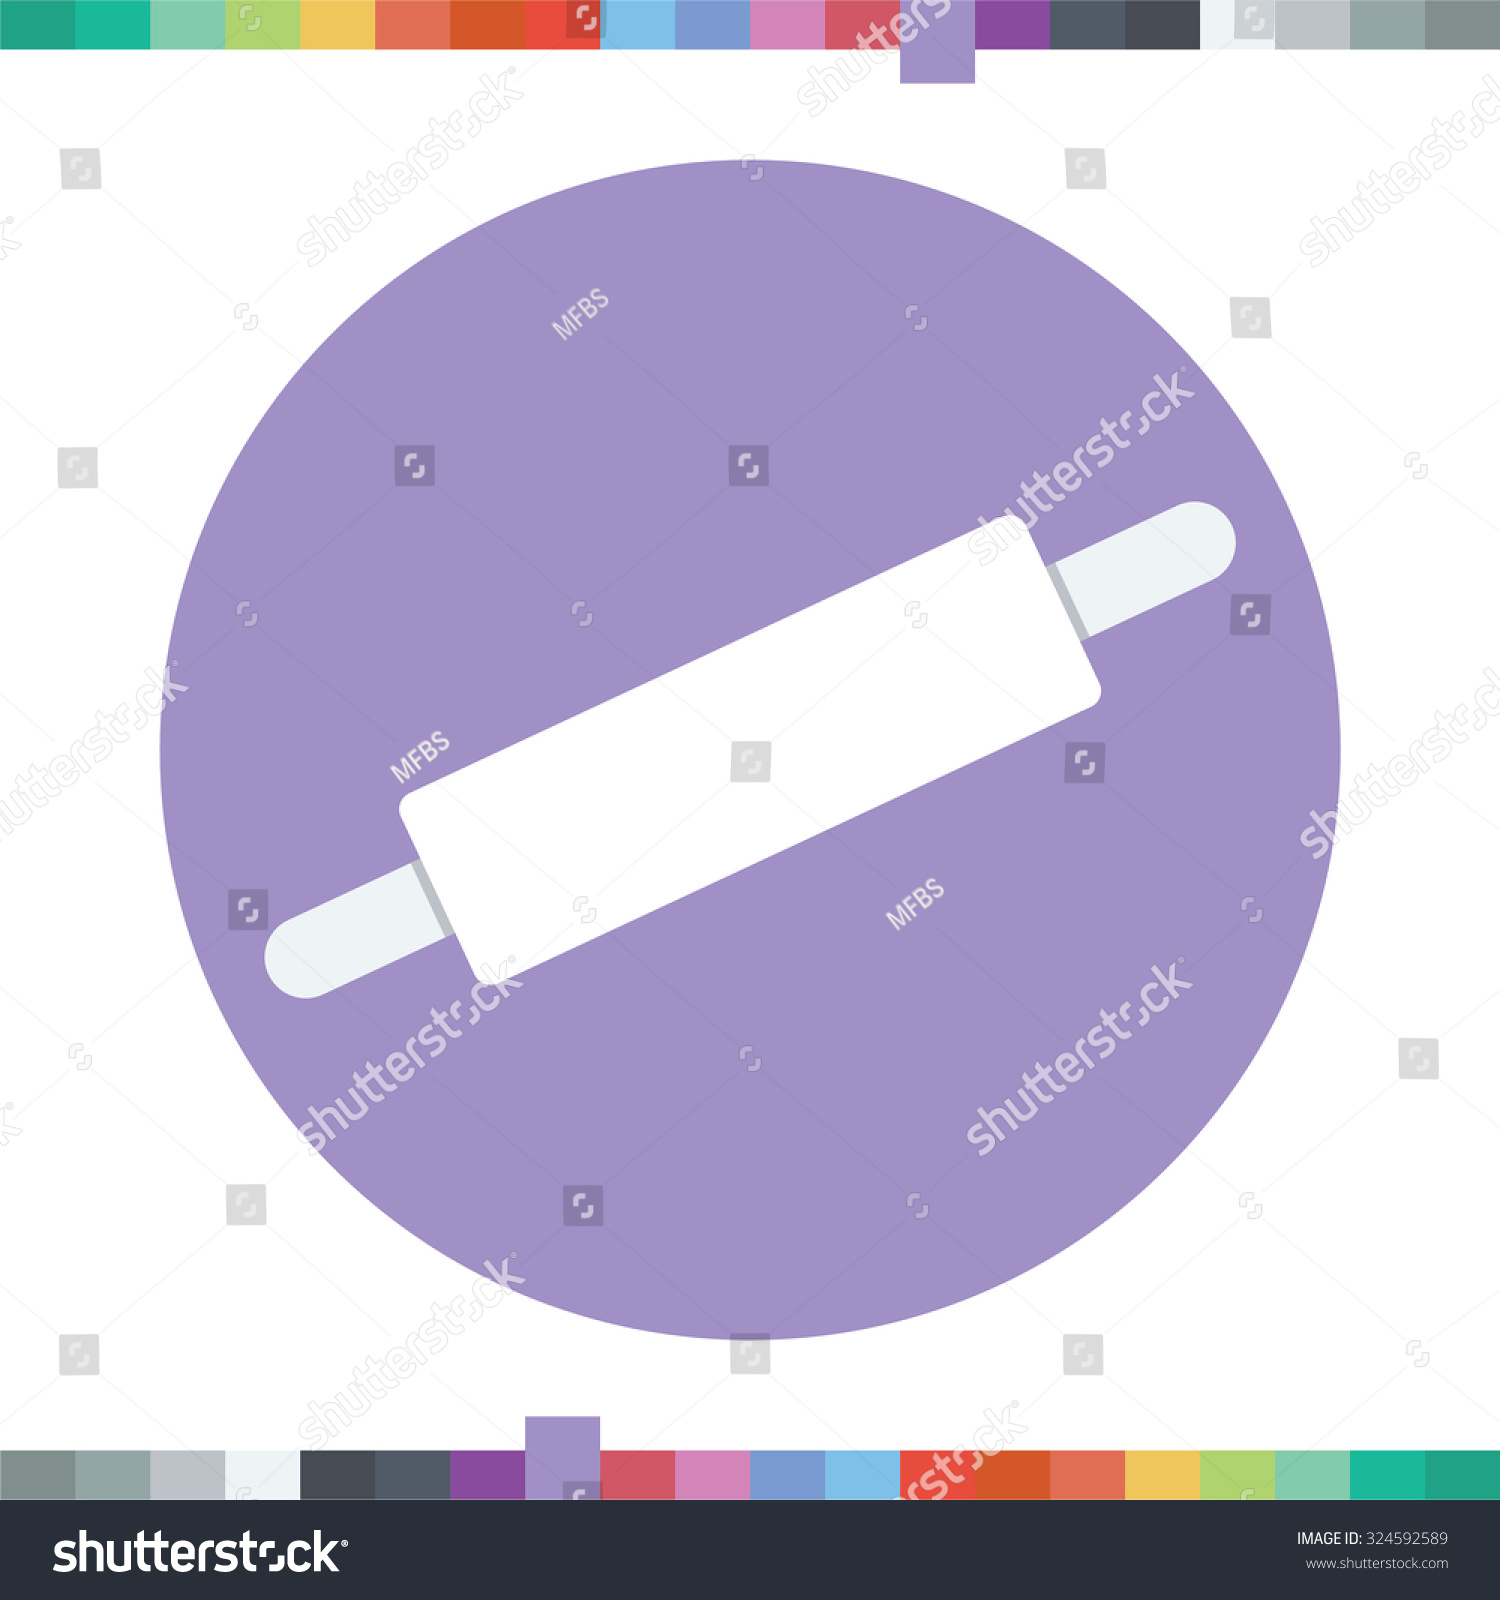 Pizza Roller Pizza Roller Icon Stock Vector Royalty Free 324592589 Shutterstock